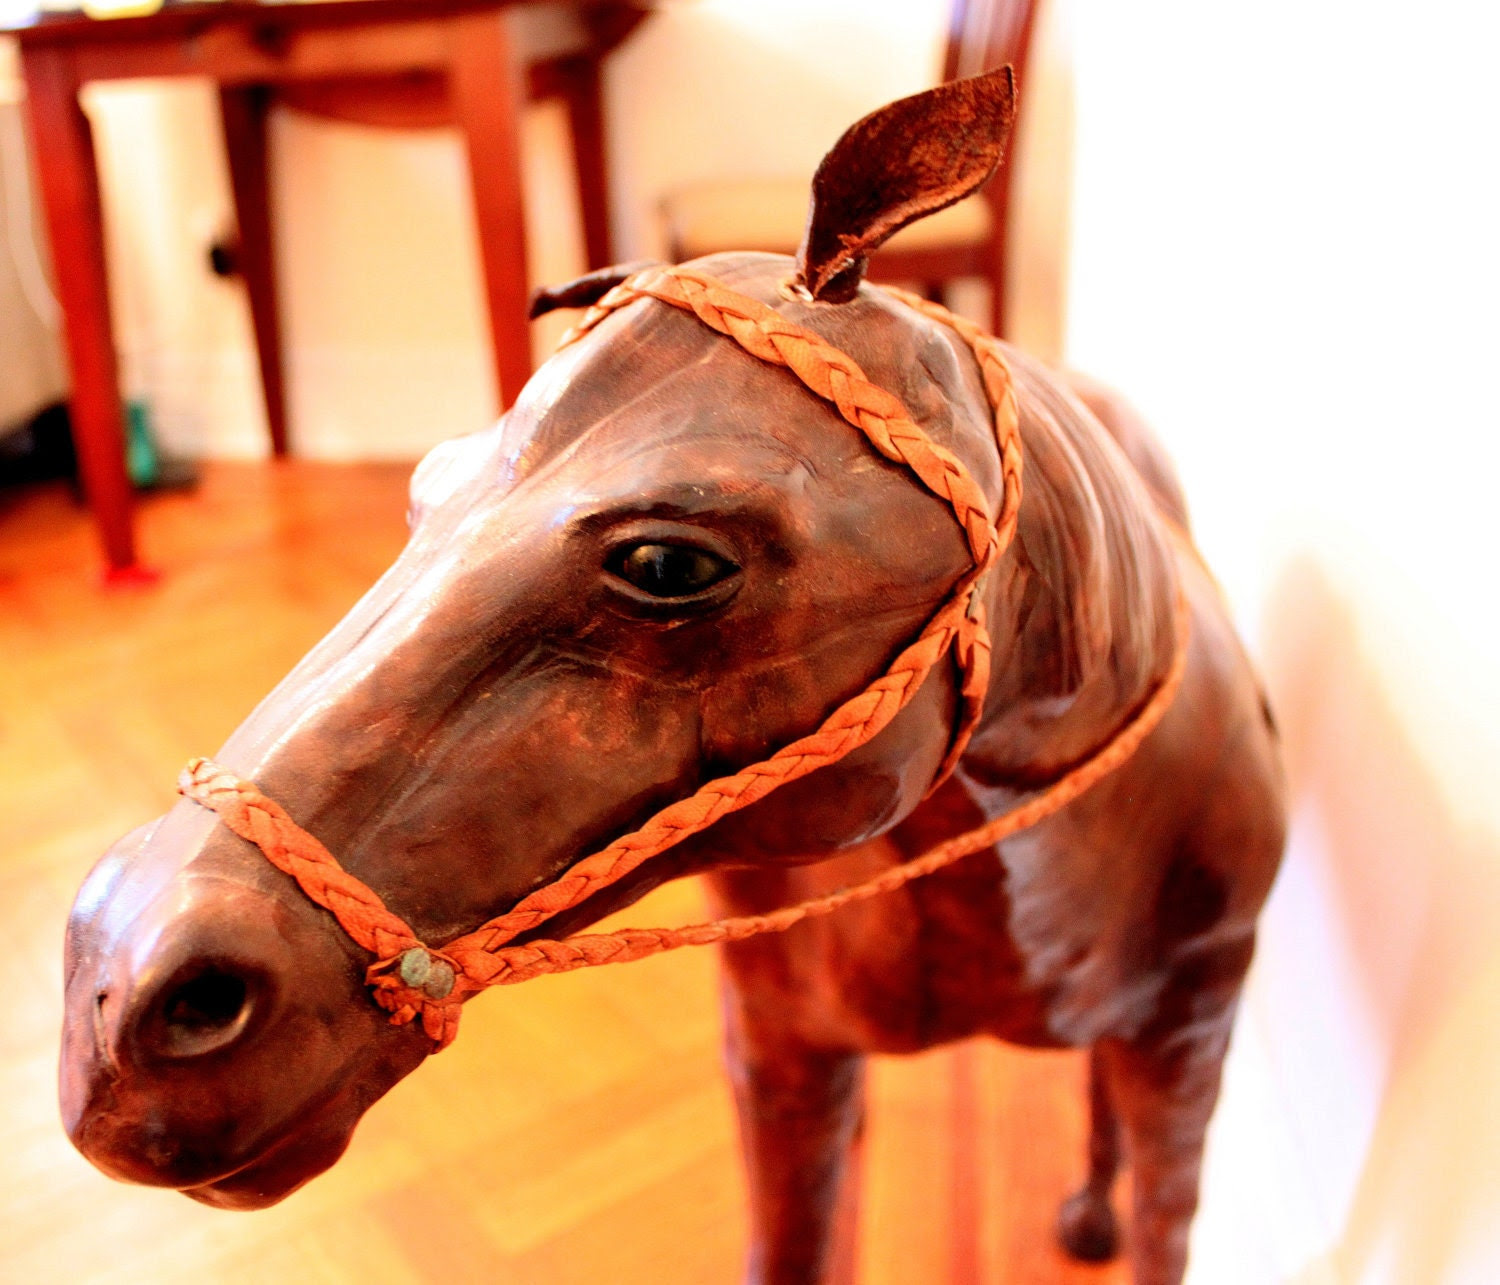 British Equestrian Leather Horse Sculpture by Fivehands